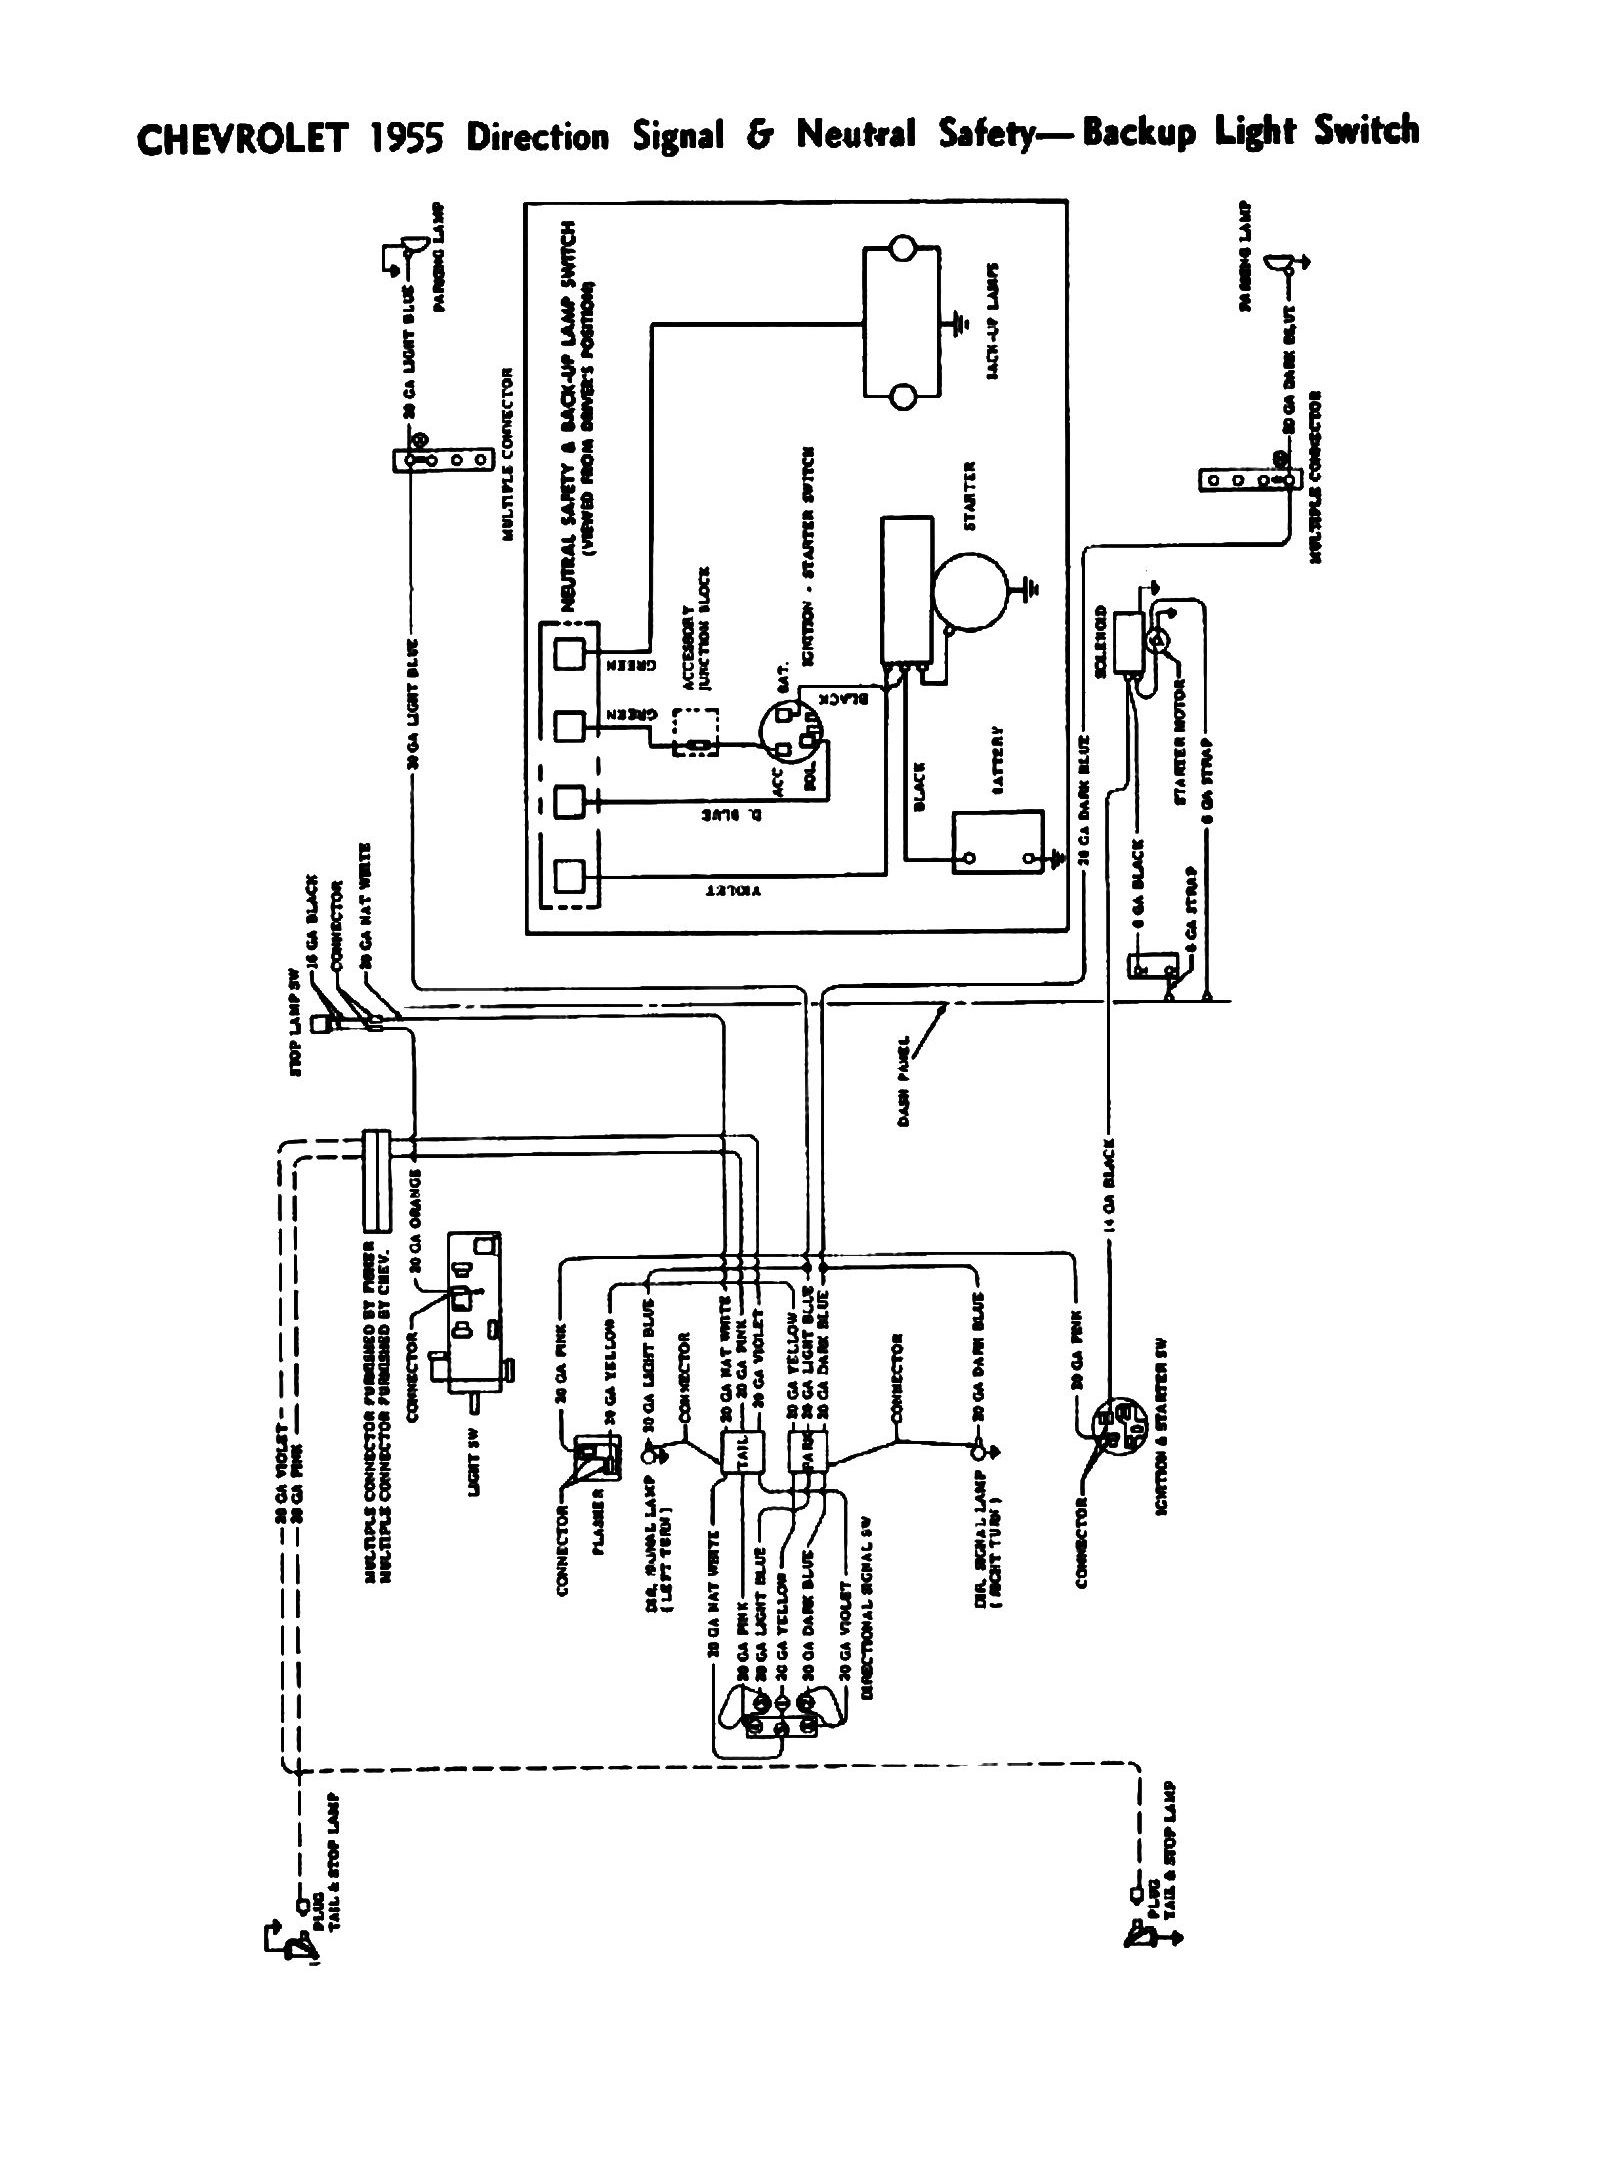 small engine ignition switch wiring diagram 1957 chevy heater wiring diagram wiring diagrams of small engine ignition switch wiring diagram?quality\\\\\\\\\\\\\\\\\\\\\\\\\\\\\\\=80\\\\\\\\\\\\\\\\\\\\\\\\\\\\\\\&strip\\\\\\\\\\\\\\\\\\\\\\\\\\\\\\\=all painless wiring for 1957 chevy wiring diagram data